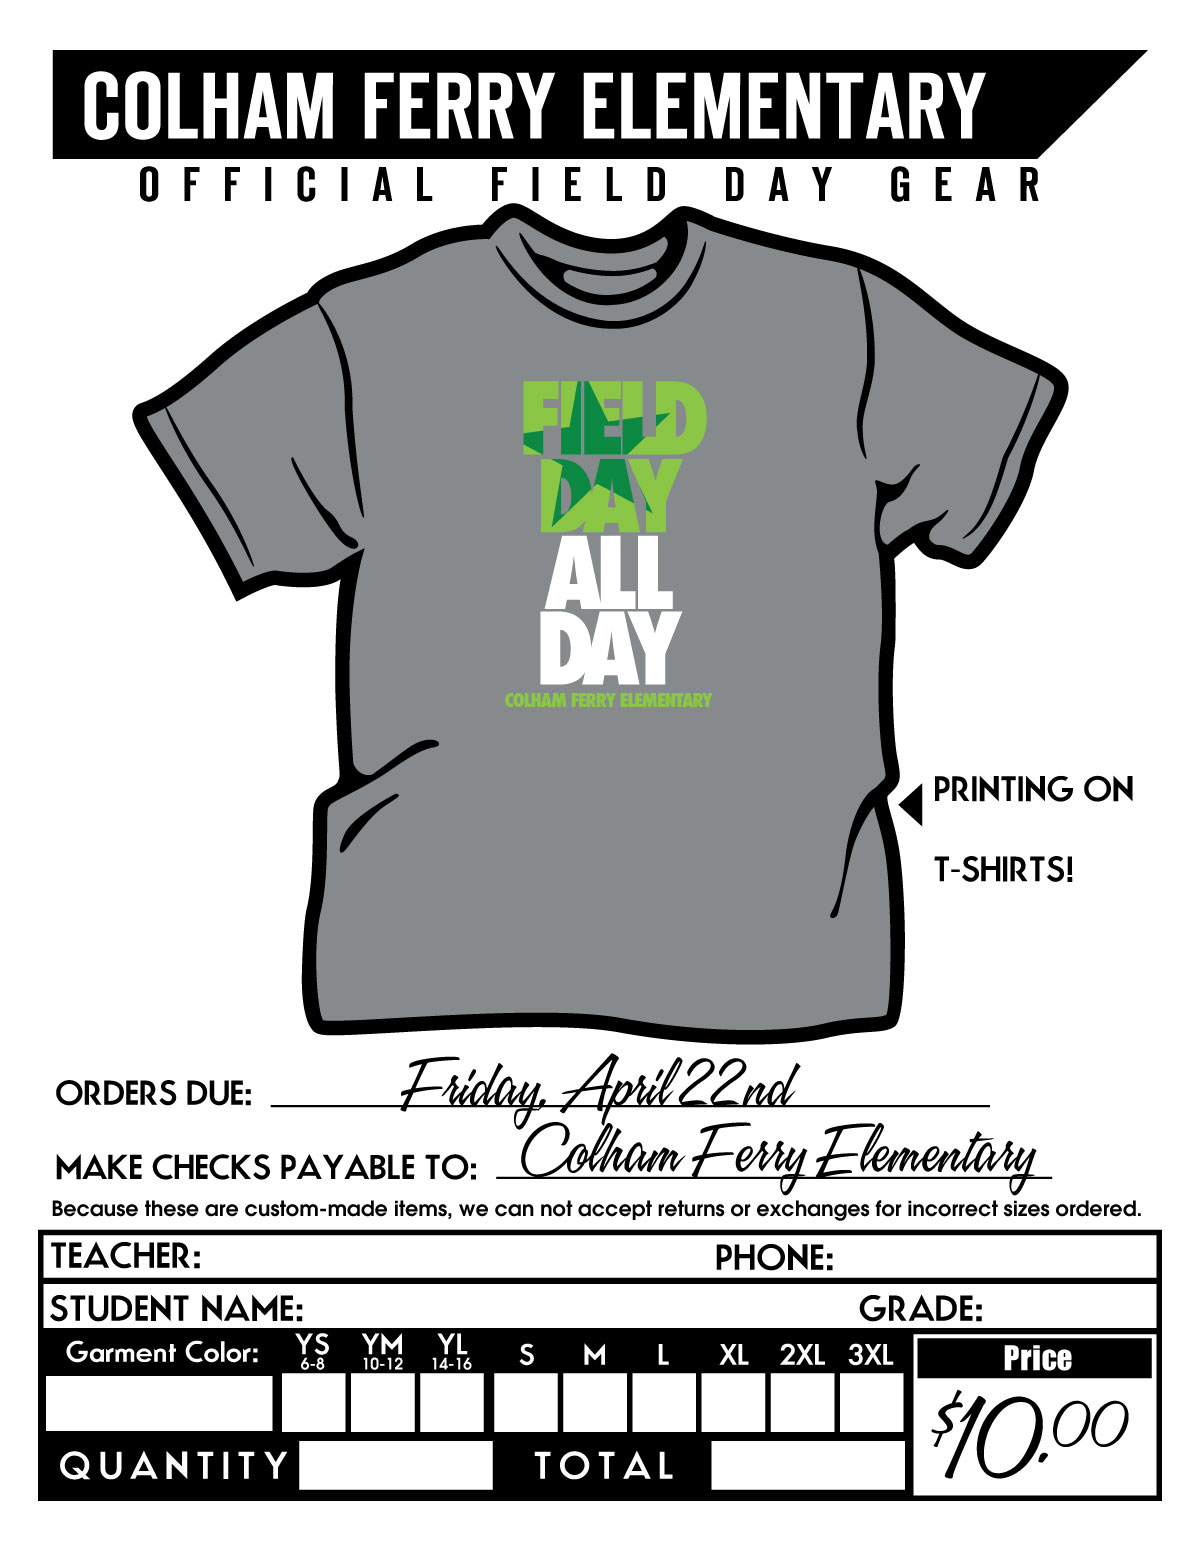 Field Day T-shirts! on t shirt quote form, book order form, shirt apparel order form, polo shirt order form, poster order form, belt order form, logo order form, clothing order form, jacket order form, toy order form, work shirt order form, shirt size form, sweater order form, camera order form, design order form, green order form, uniform shirt order form, hooded sweatshirt order form, employee uniform request form, gift order form,